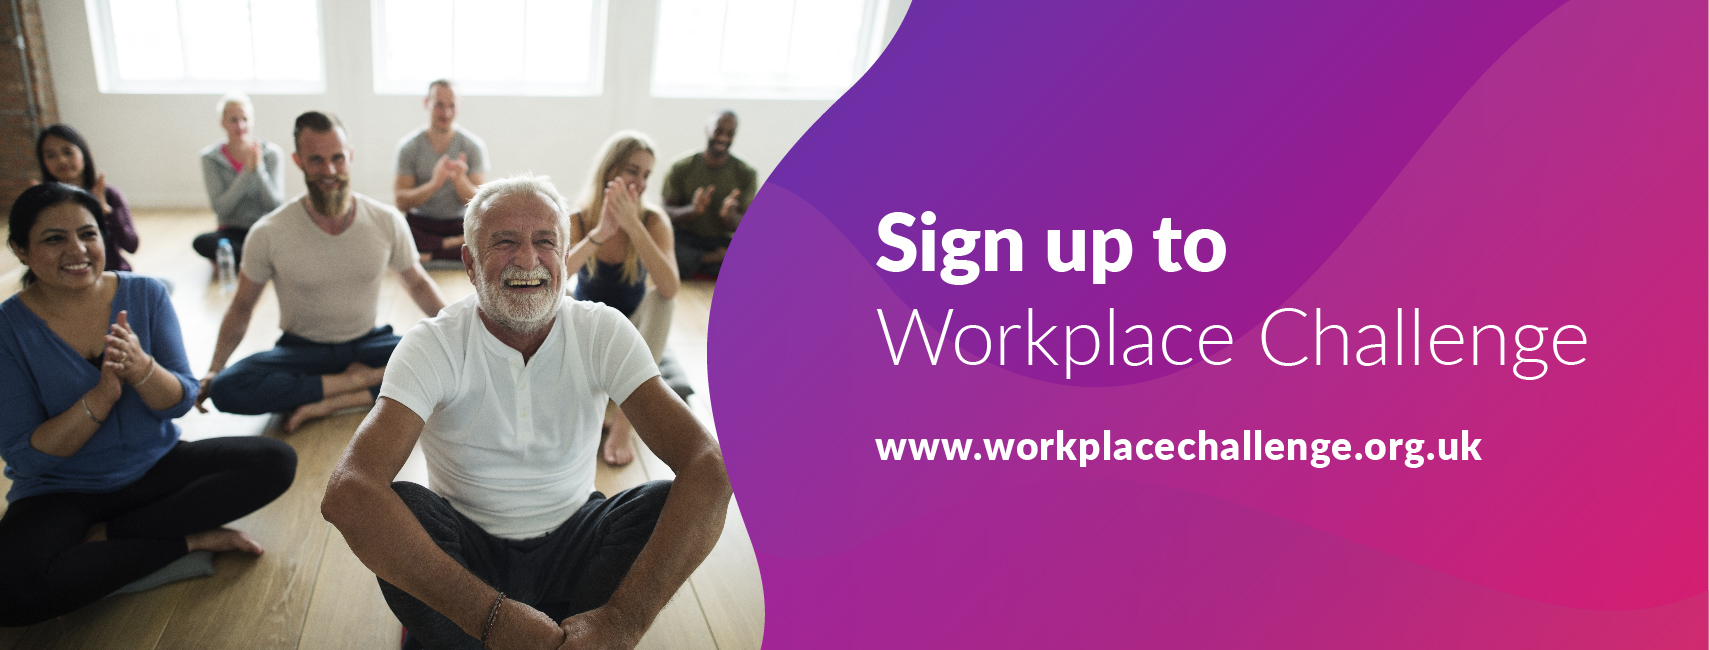 Workplace Challenge - Sign up banner